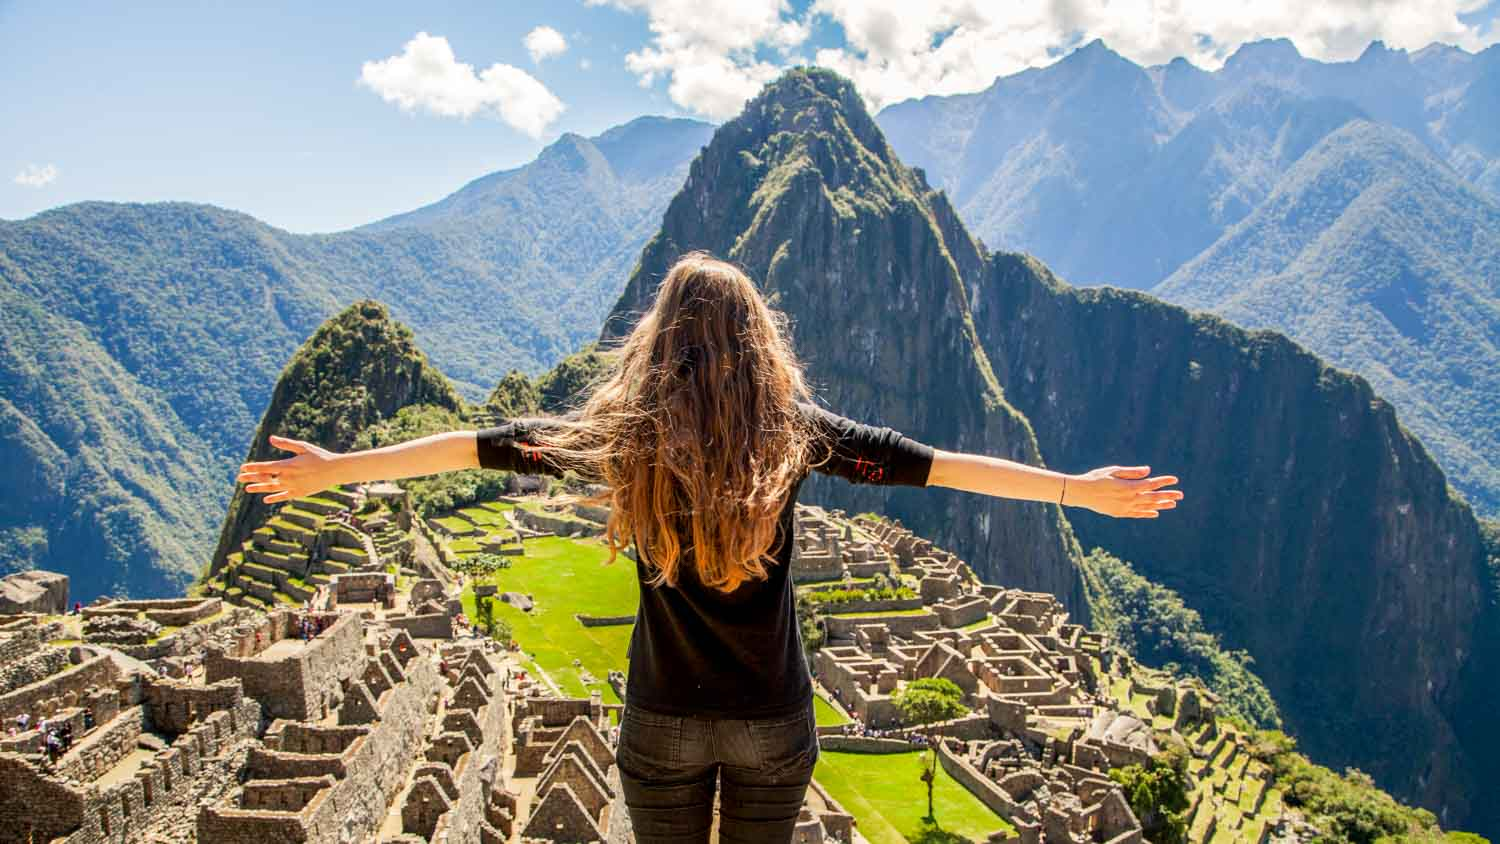 Machu Picchu - Book Tickets, Treks & Tours | GetYourGuide